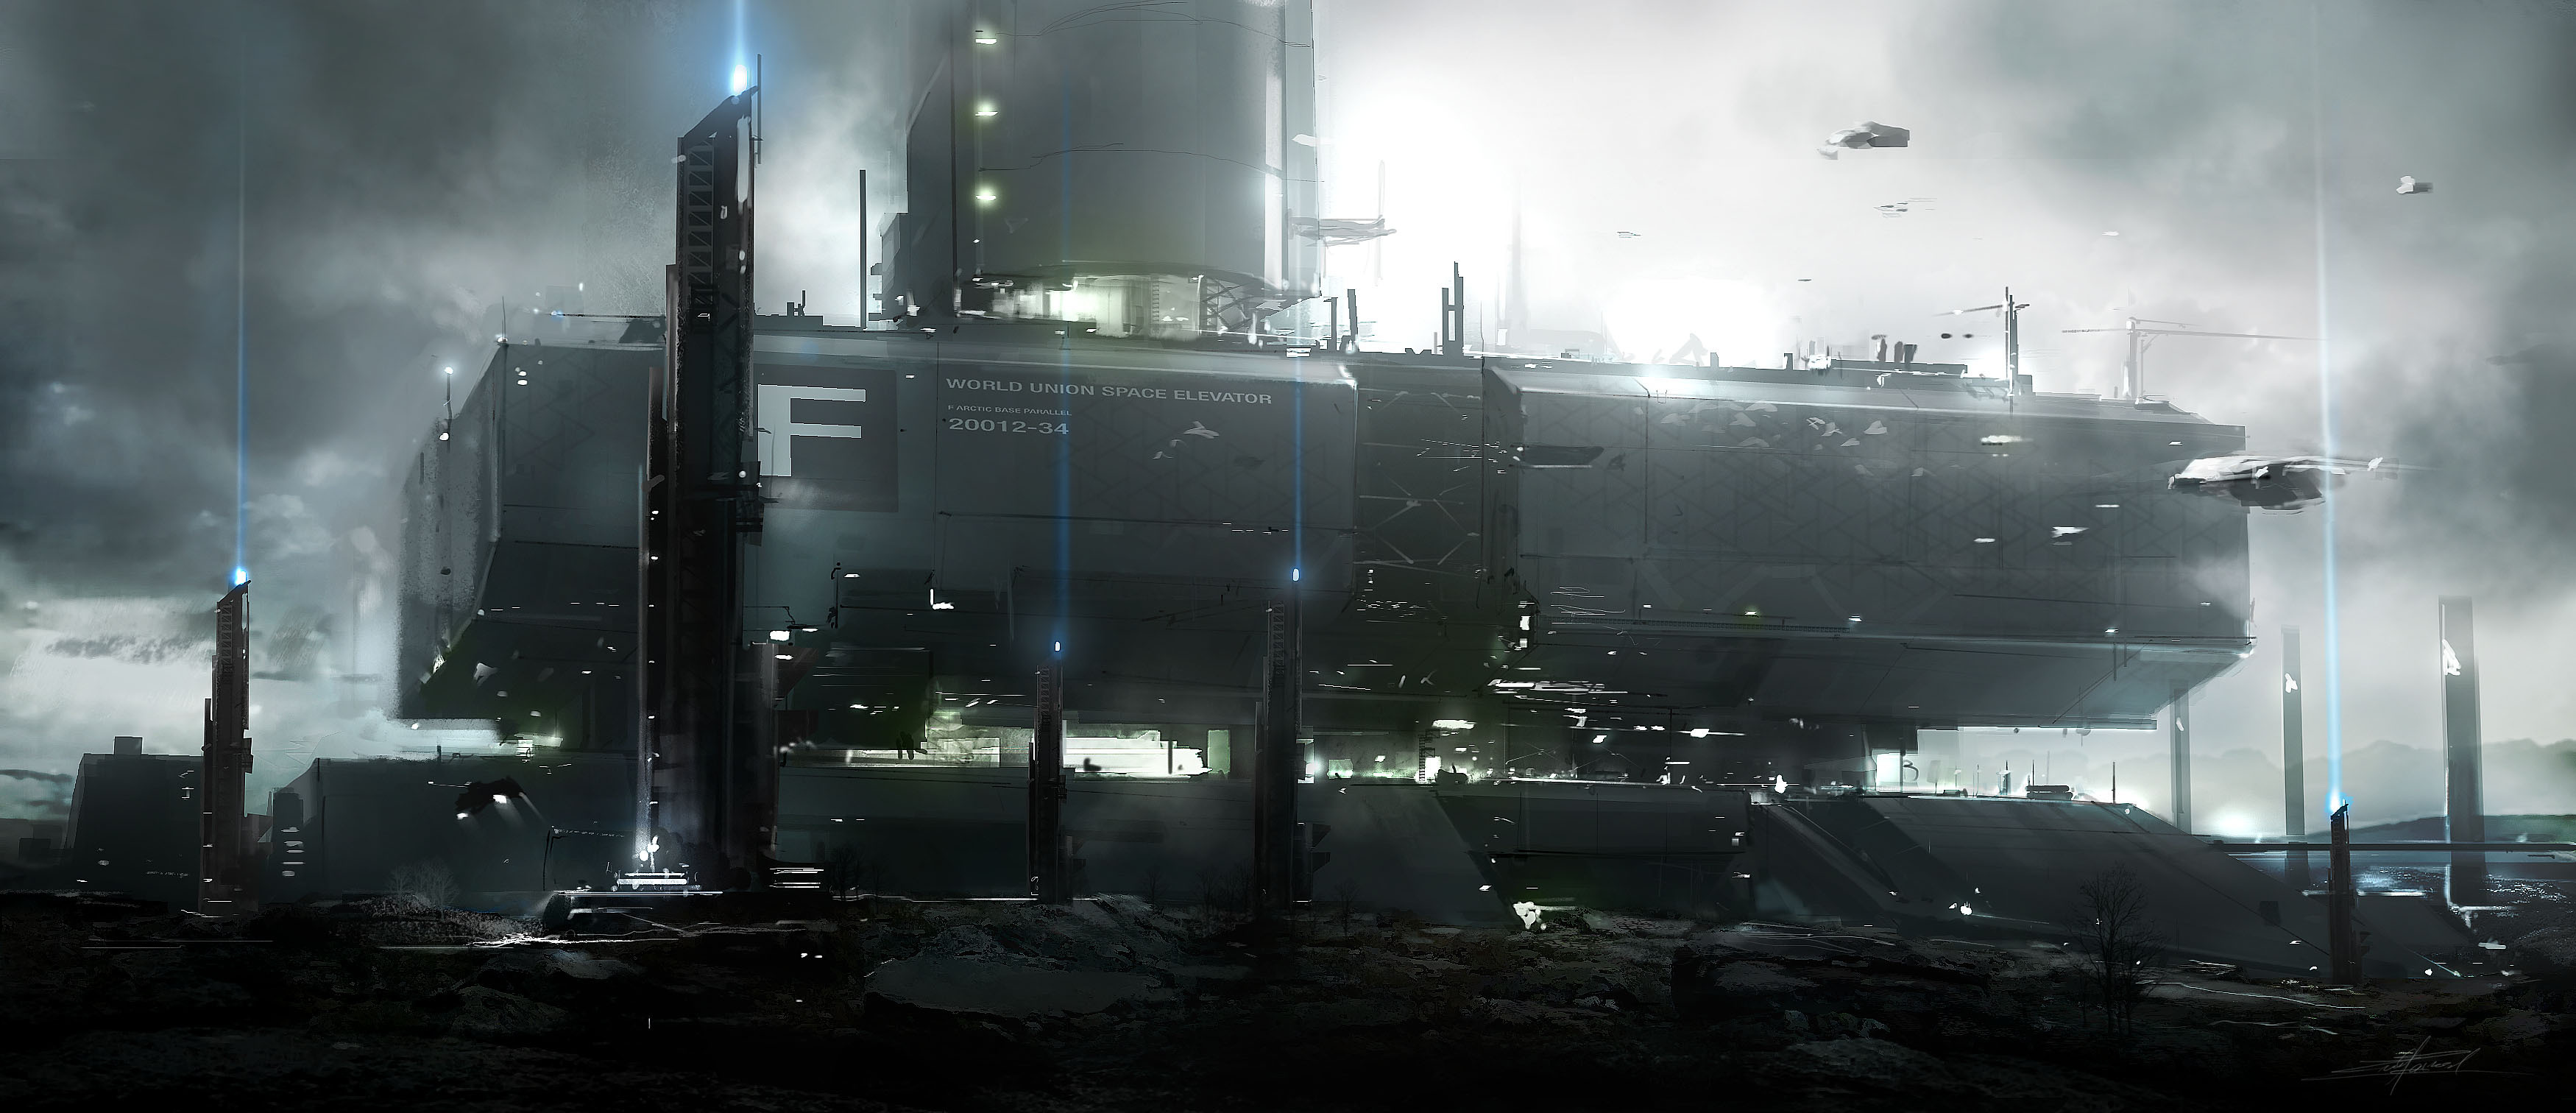 3500x1512 - Sci Fi Building Wallpapers 1